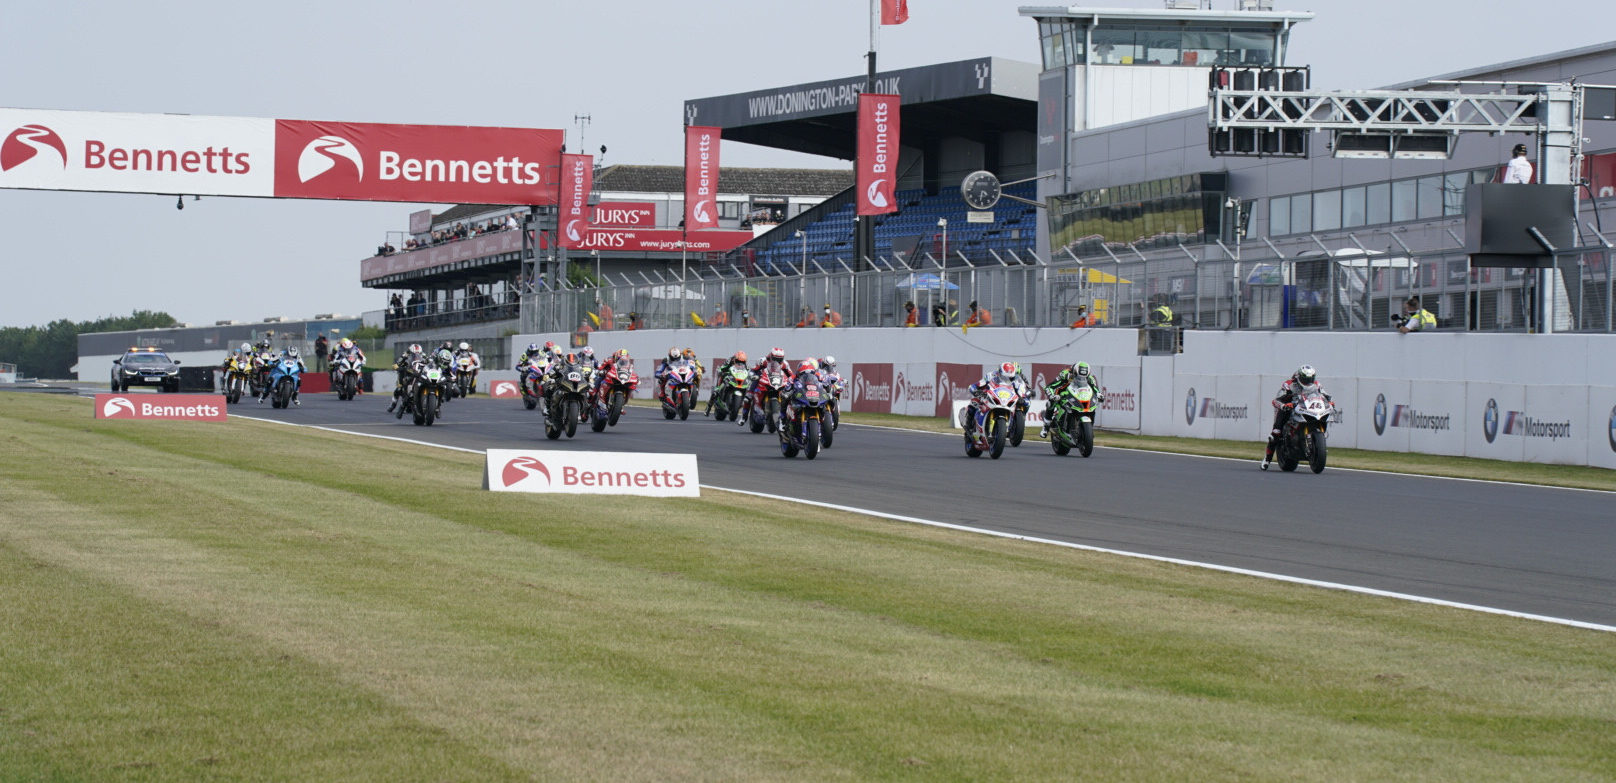 The start of a British Superbike race at Donington Park. Photo courtesy MSVR.